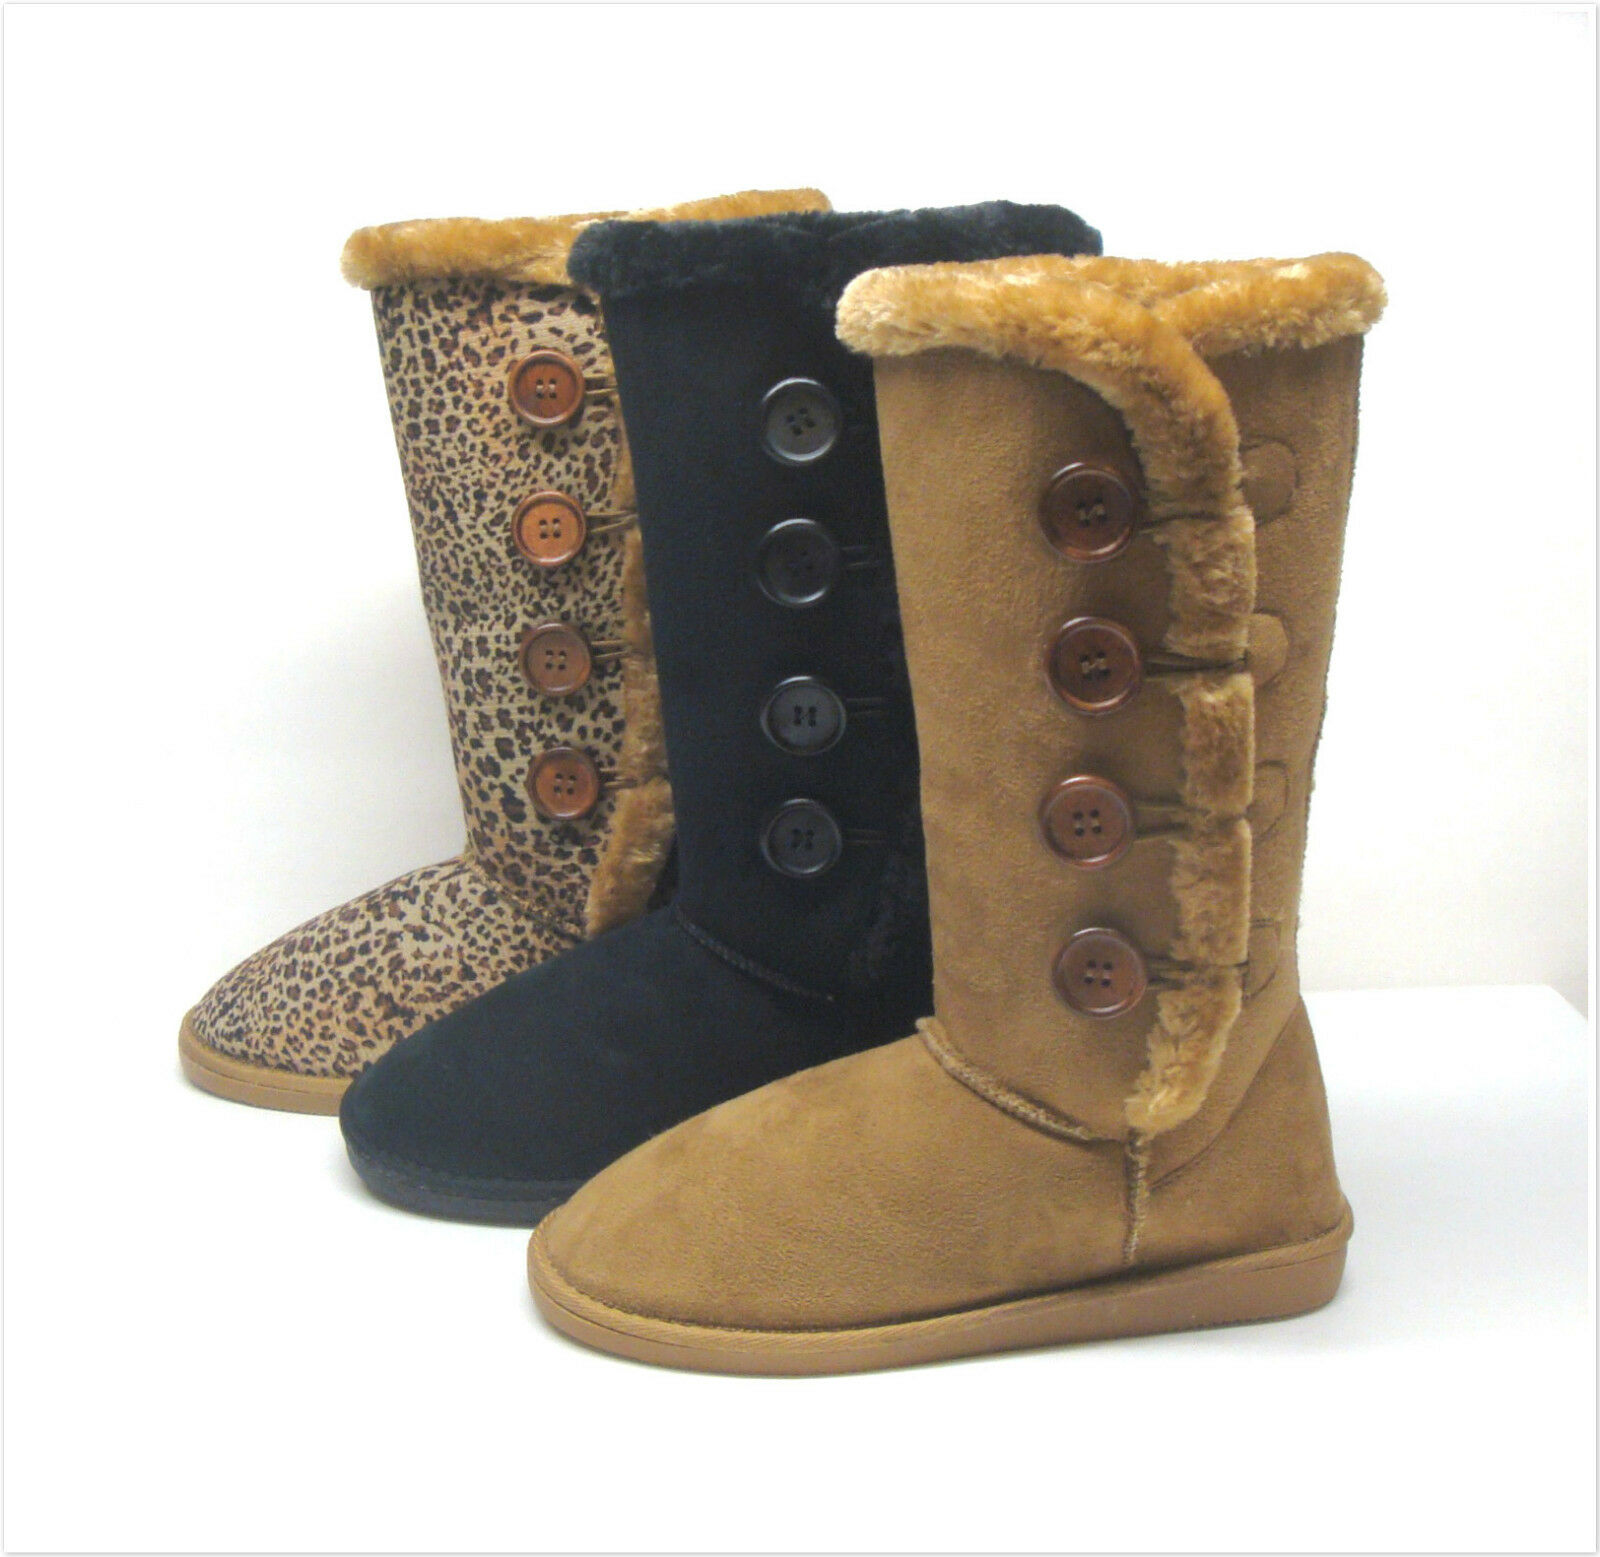 Brand New Women's Mid-Calf Winter Snow Four Buttons Boots Size 5.5 - 10